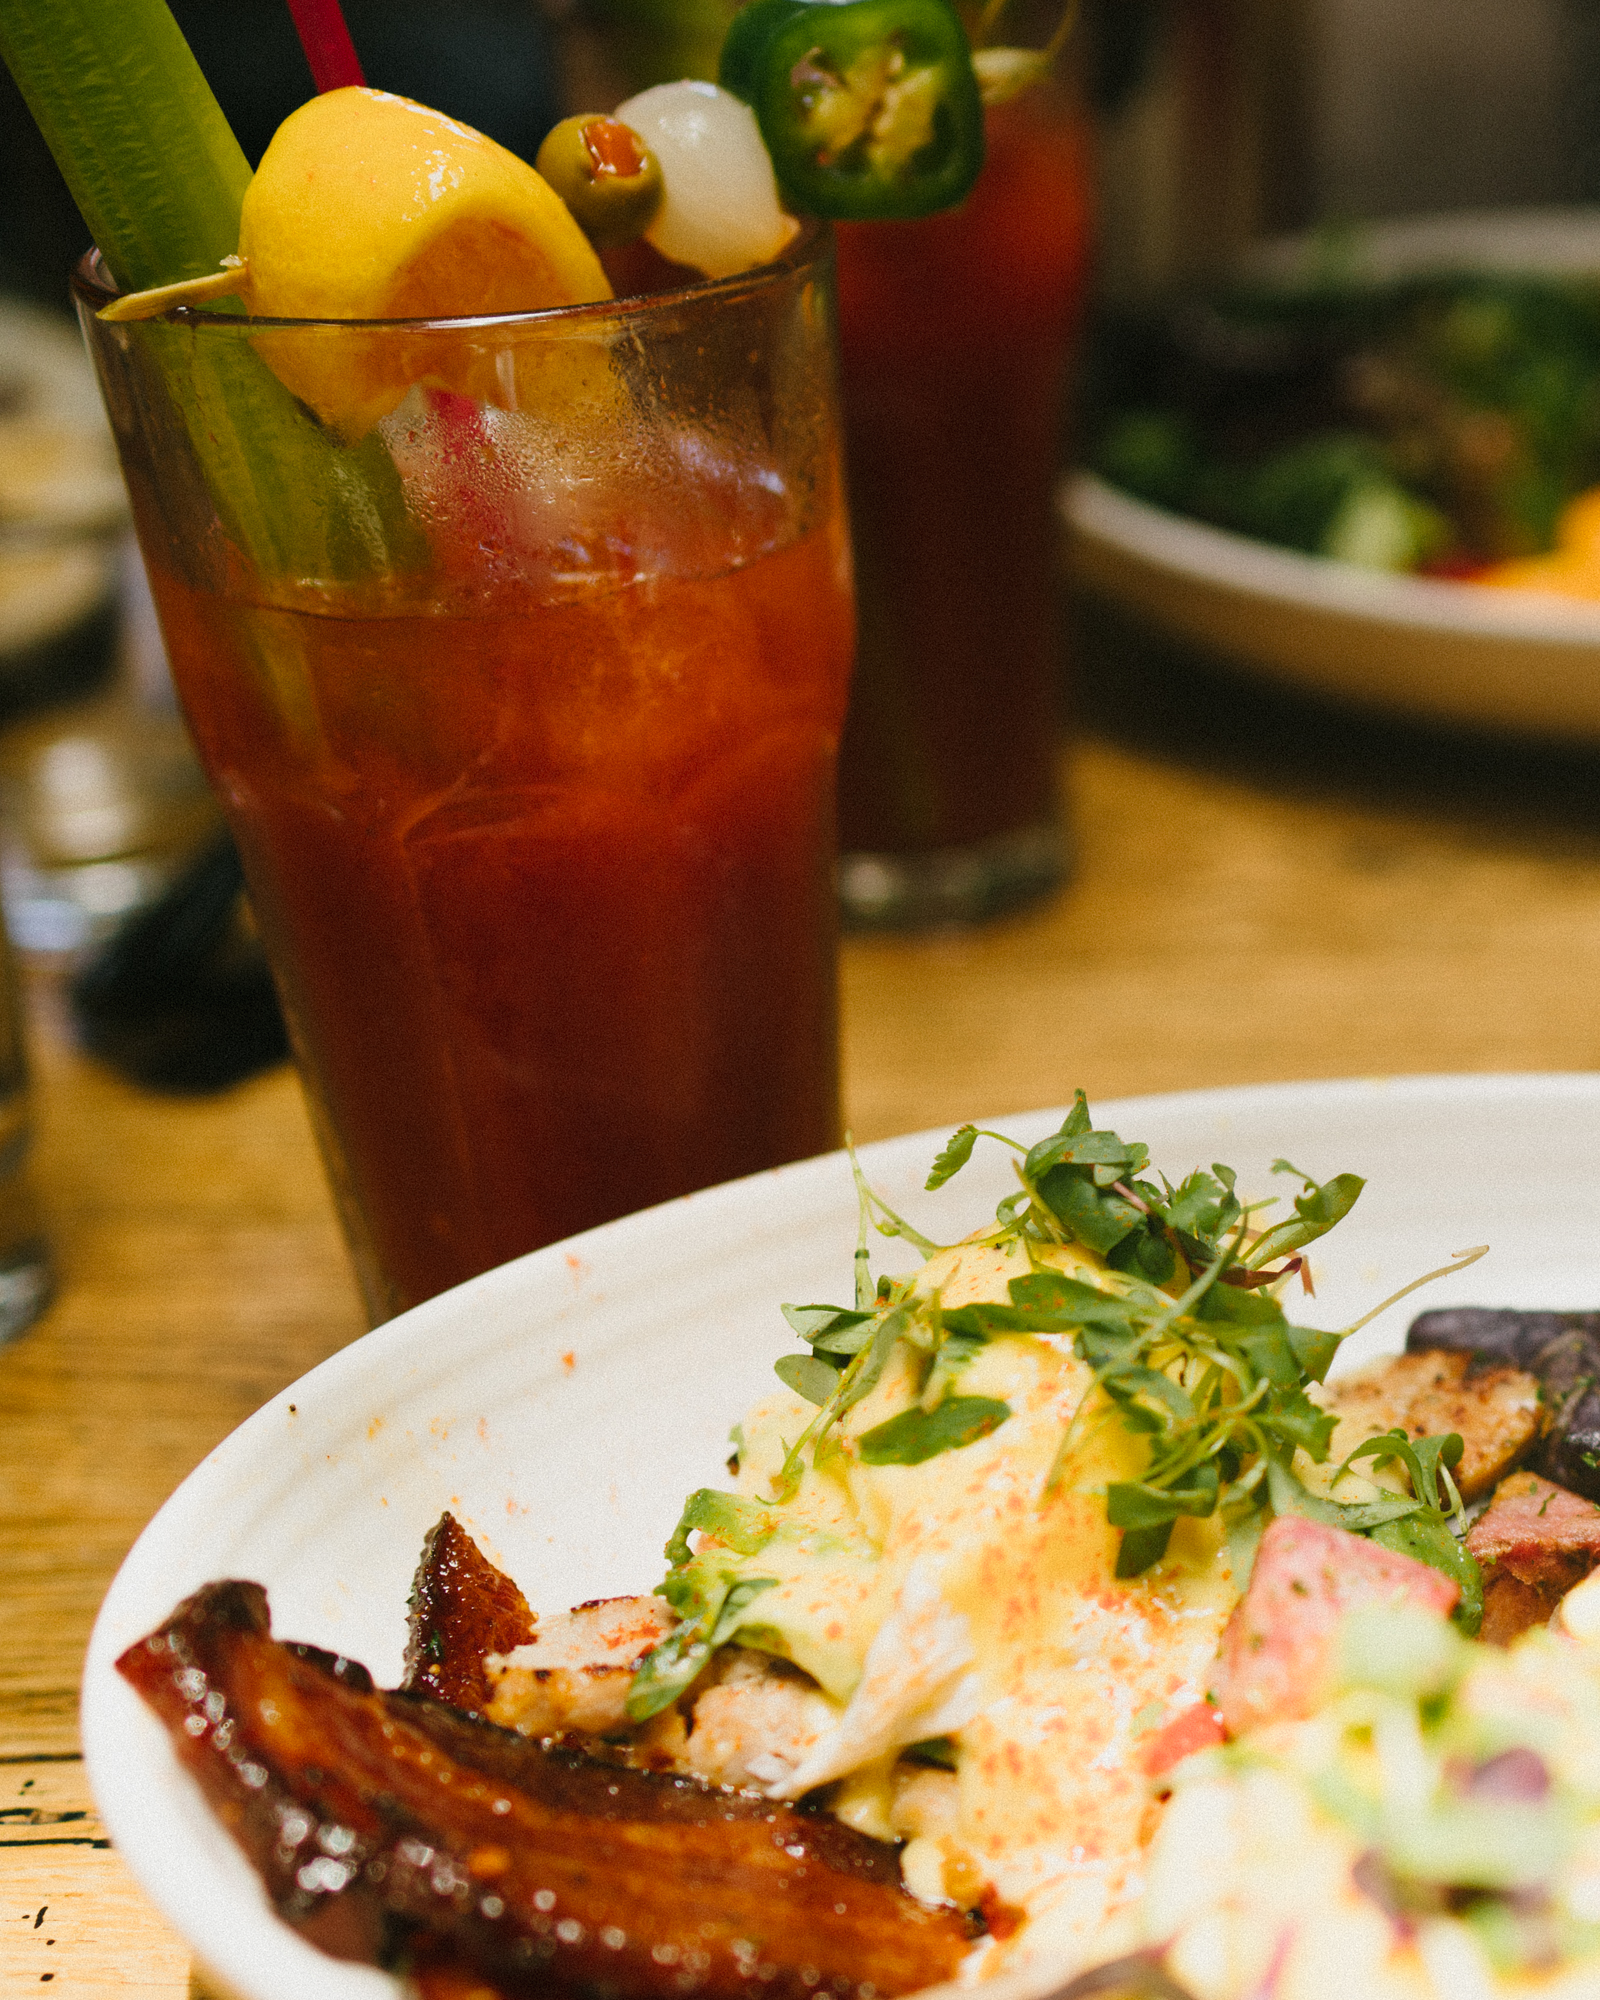 Best Brunch Spots in San Francisco